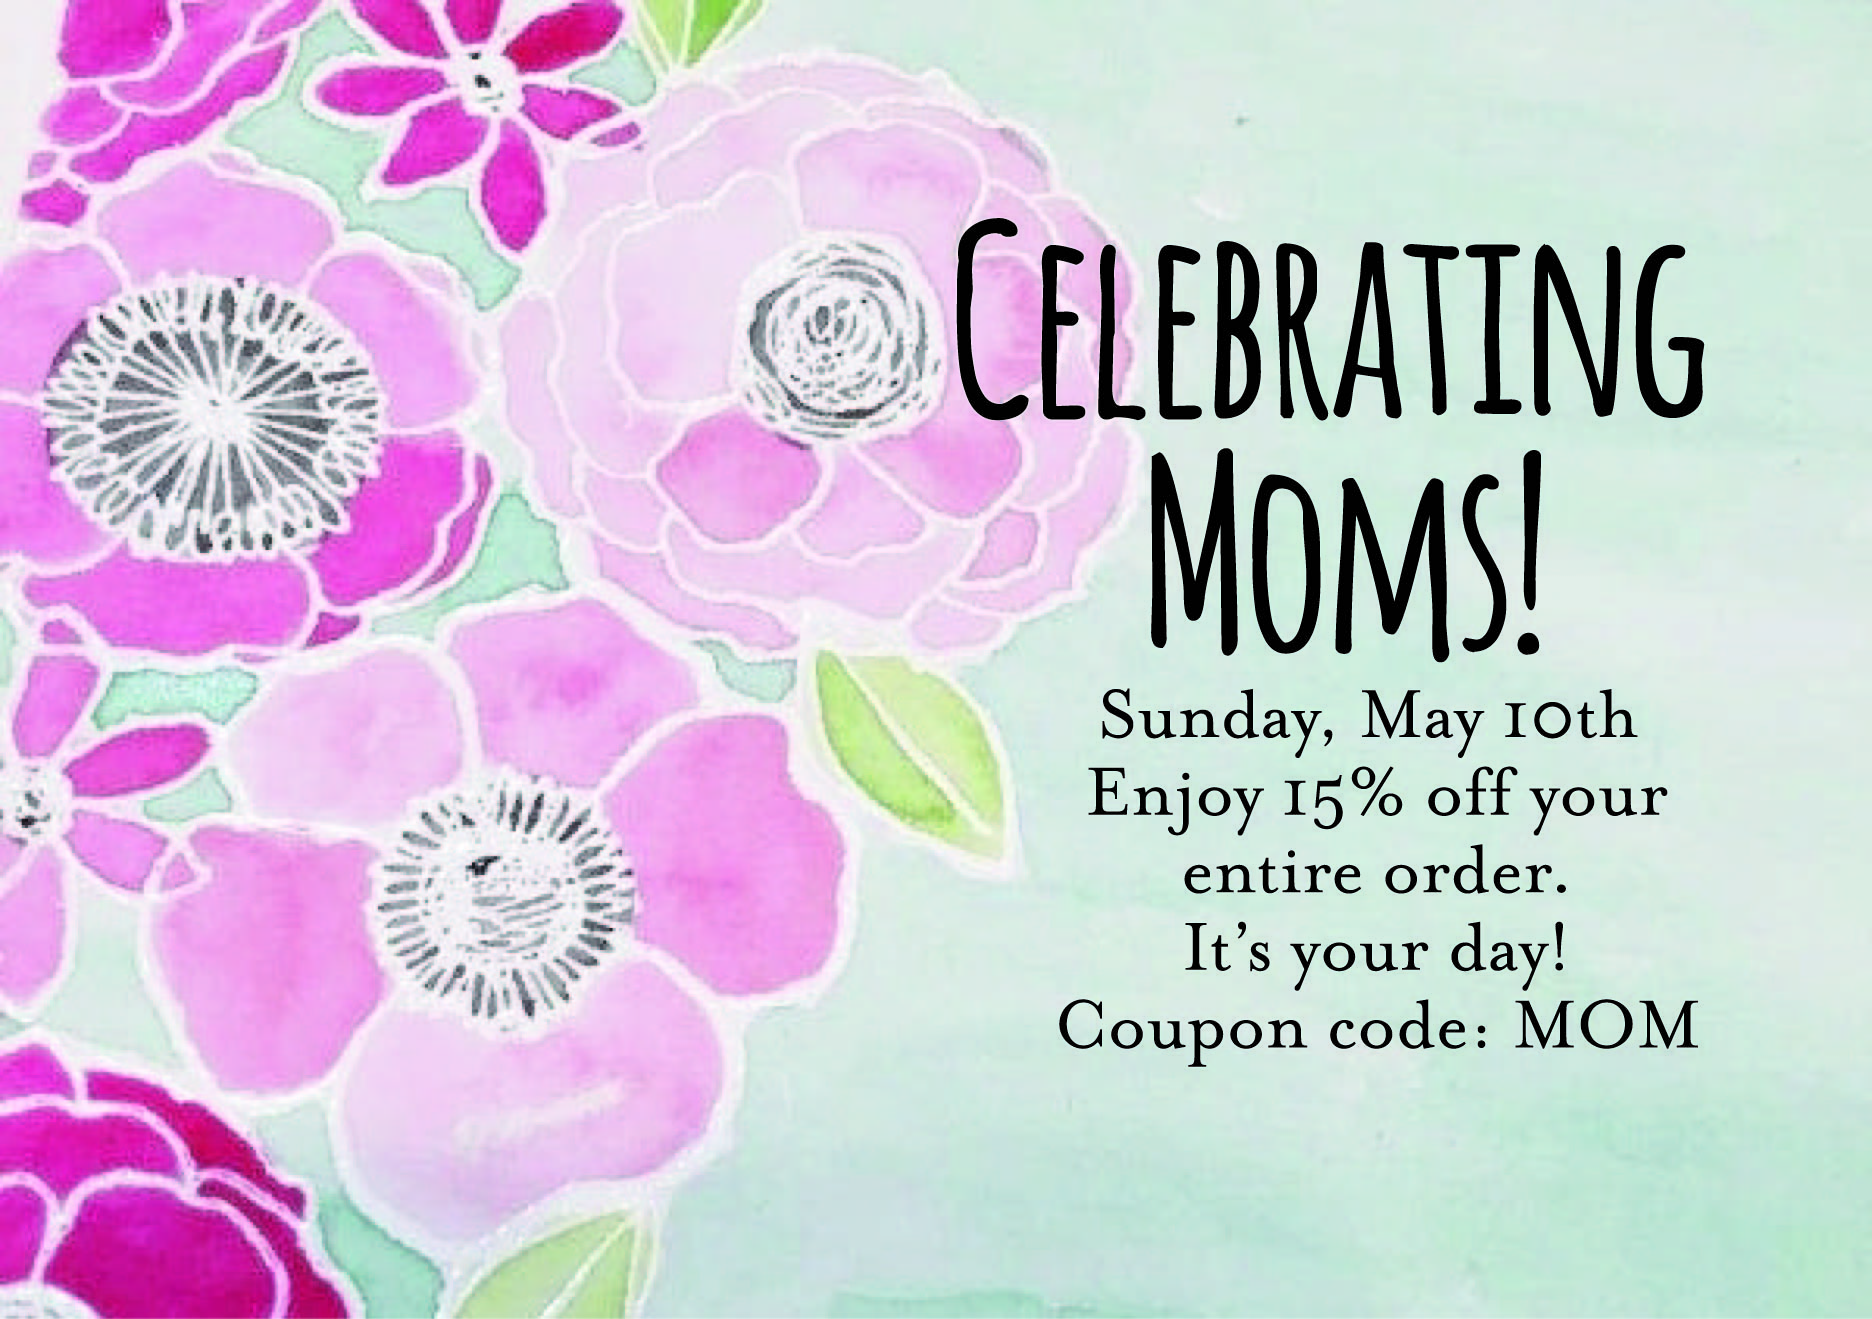 mother's day coupon 2015 web